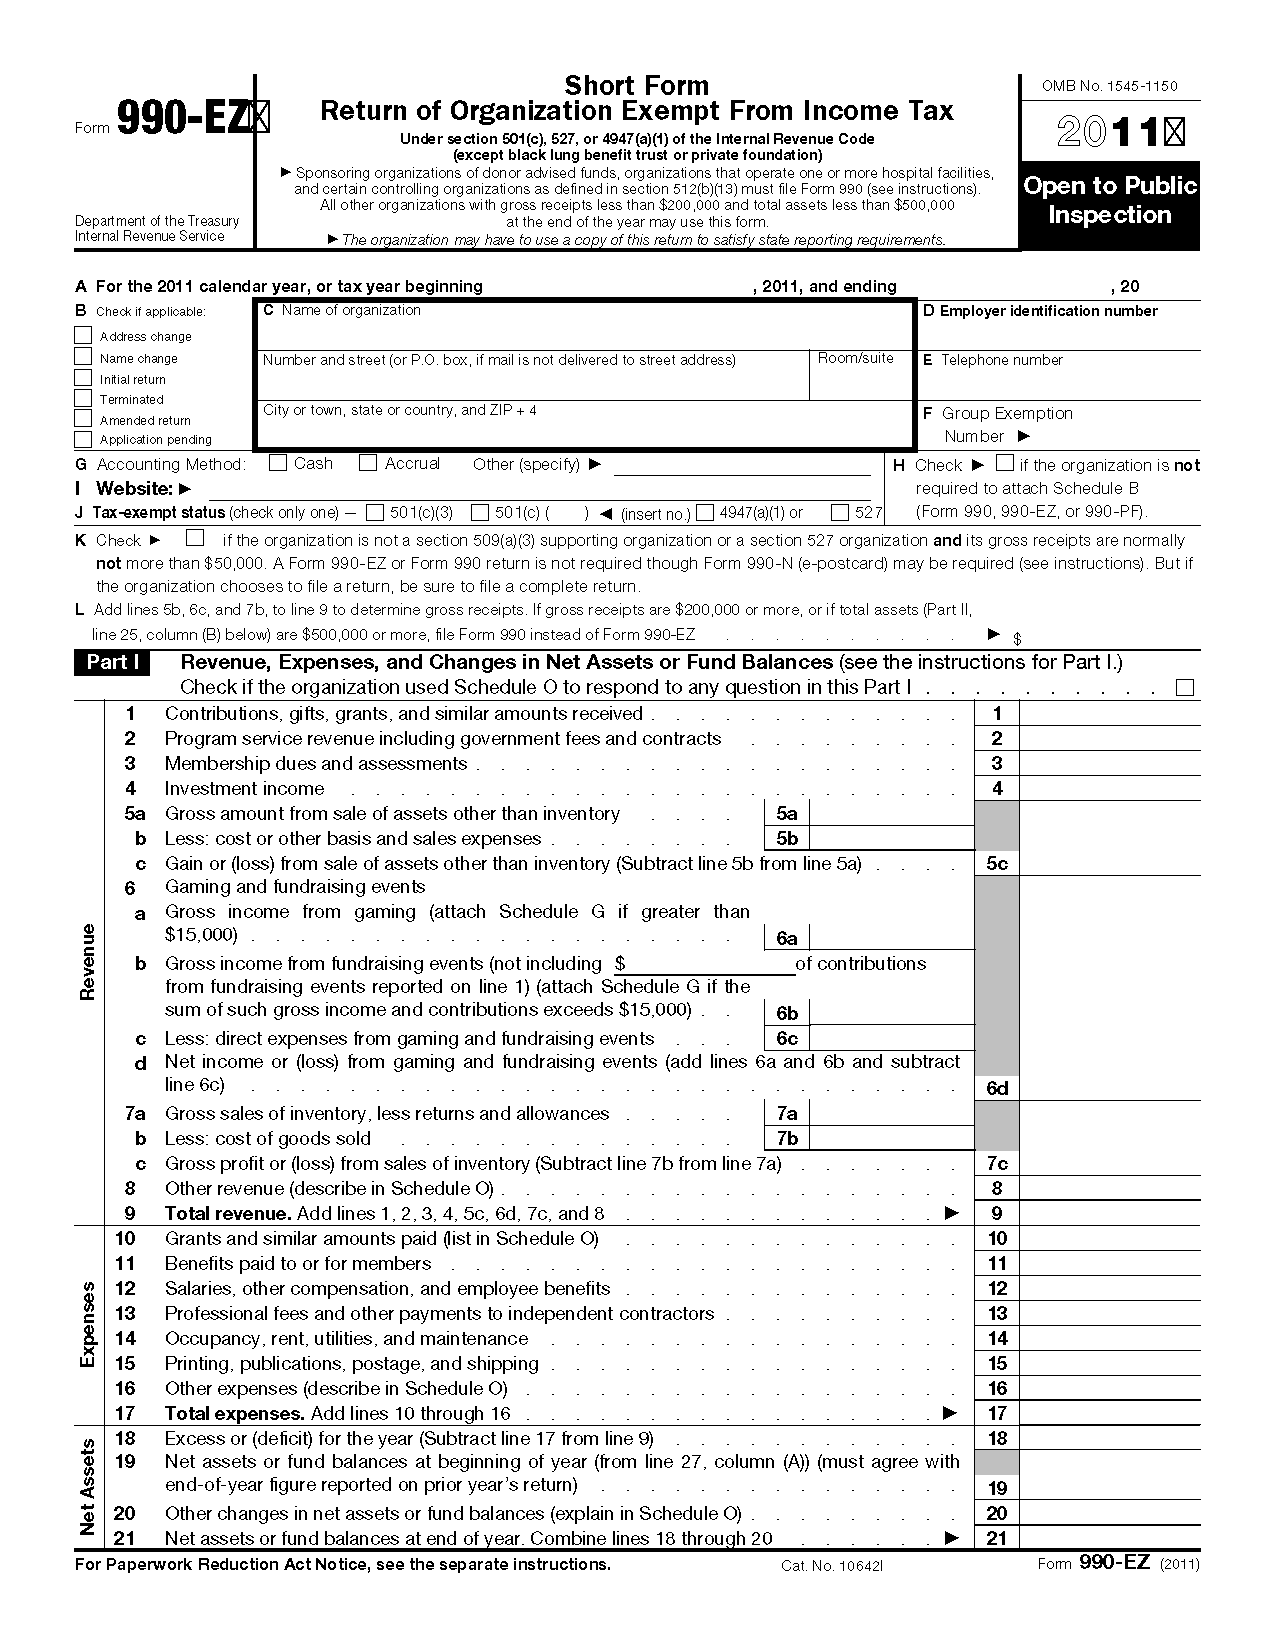 Form 990EZ Short Form Return of Organization Exempt from Income Tax – Tax Exemption Form